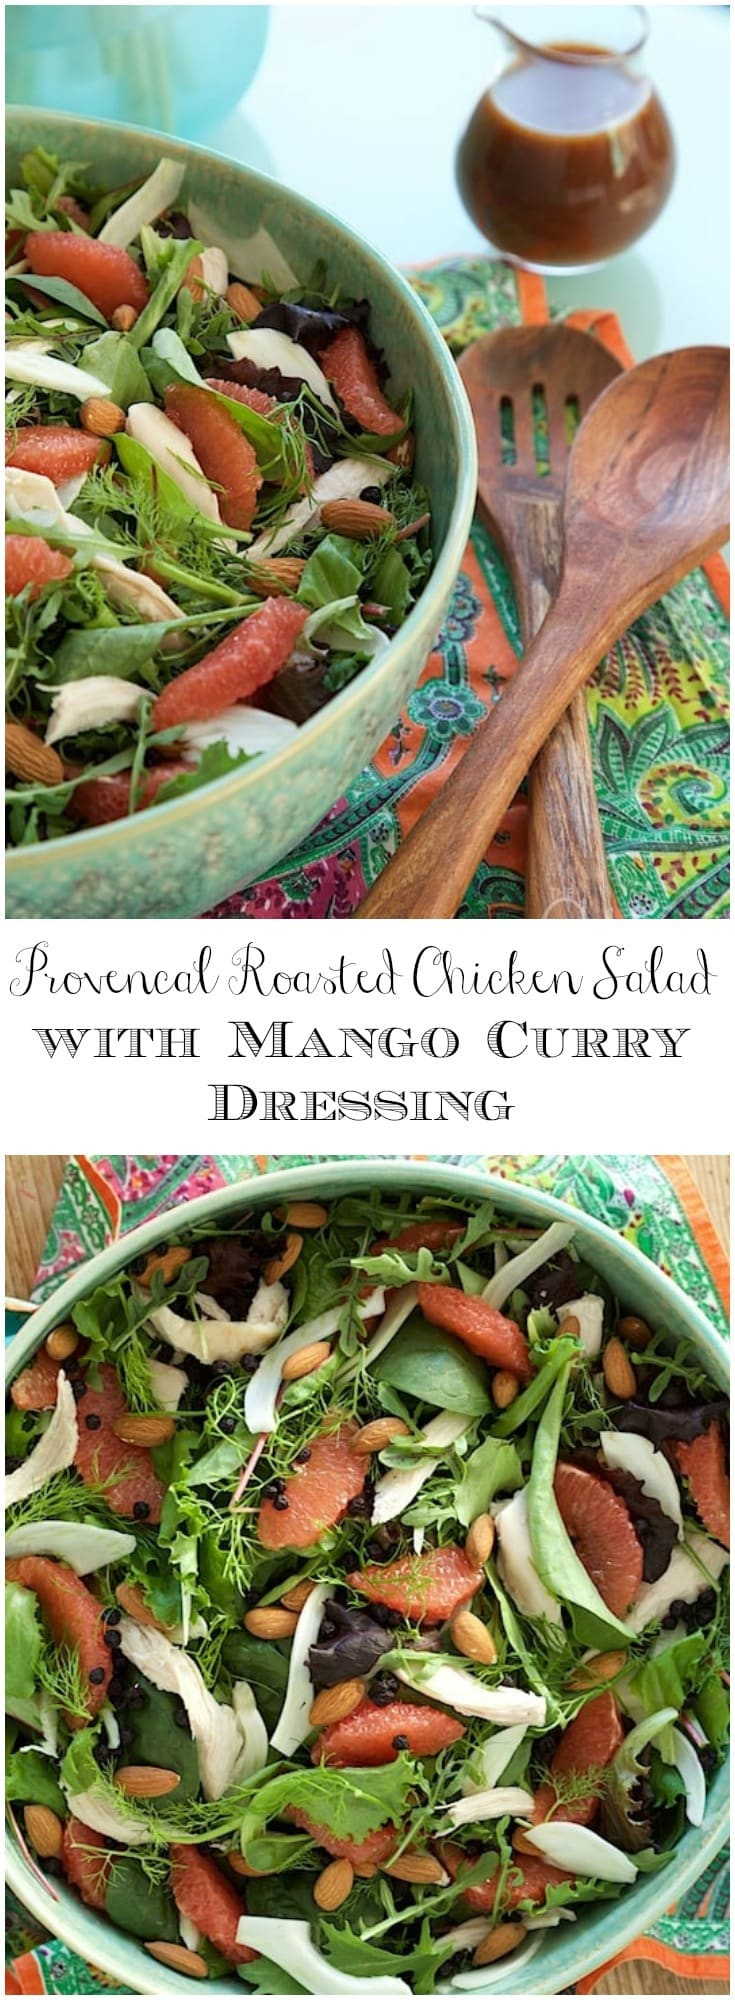 provencal roasted chicken salad with mango curry dressing